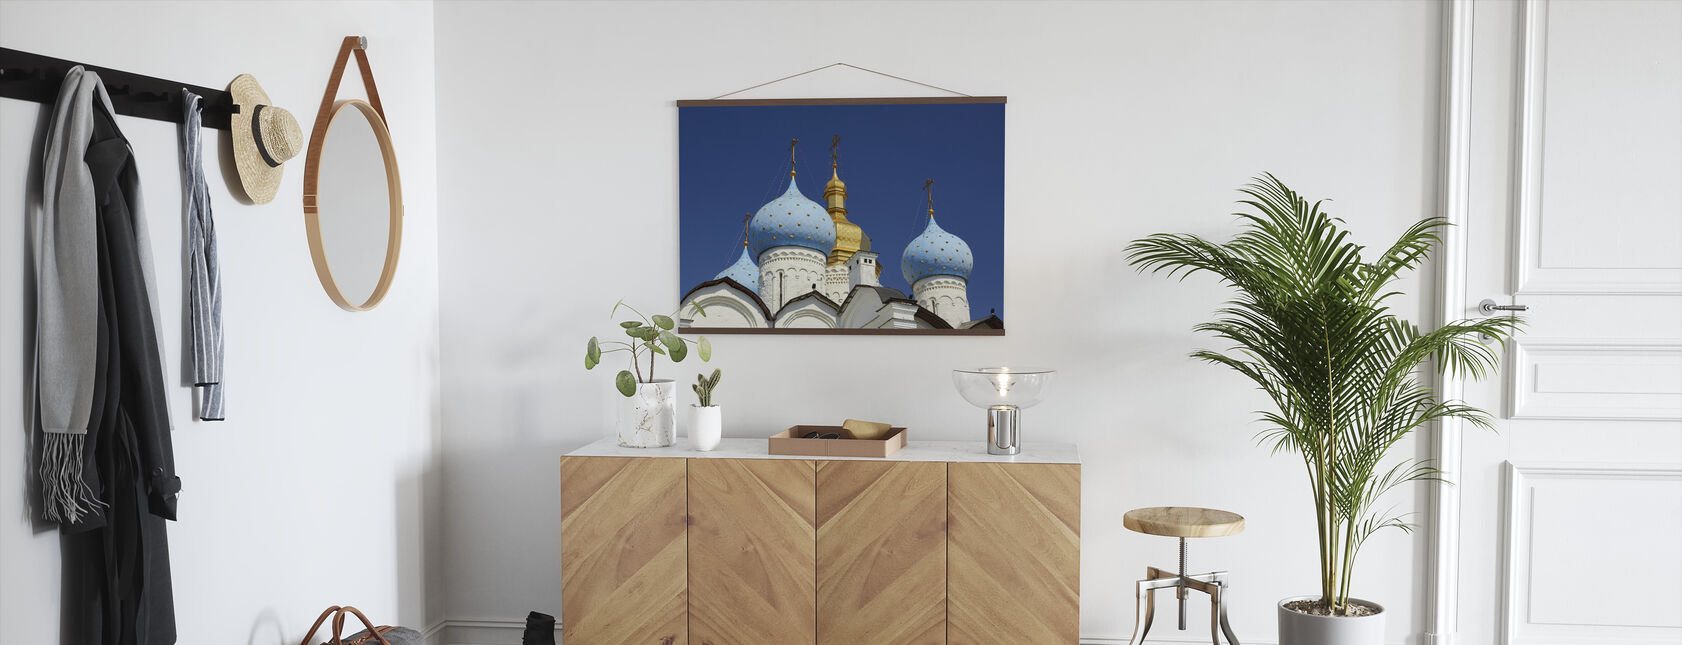 Annunciation Cathedral, Moscow - Poster - Hallway